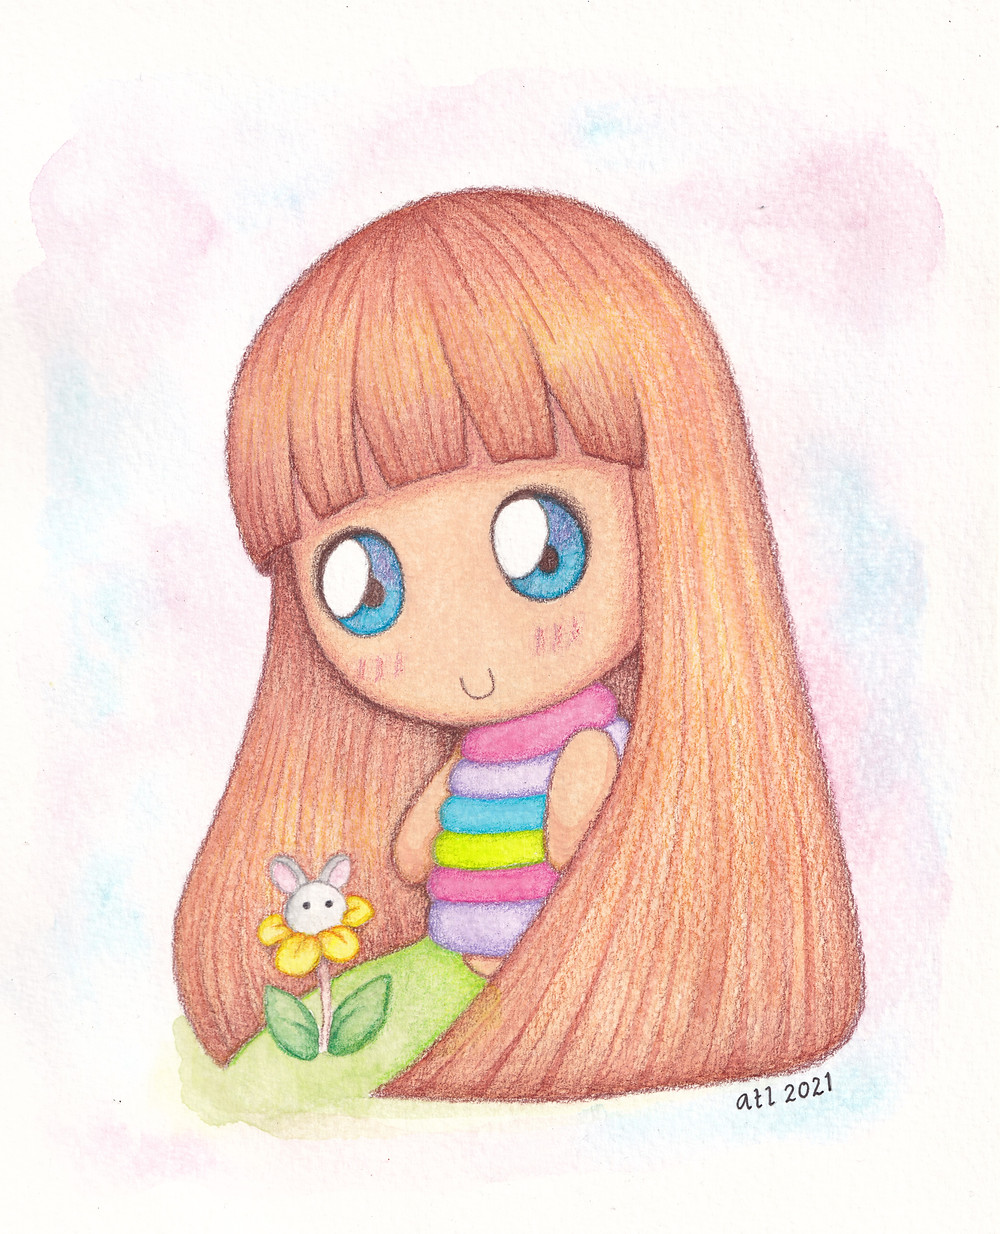 Bunnybow watercolour and pencil sketch by Anna Legaspi art. Bunnybow is a cute, kawaii bunny rabbit looking at a rabbit flower.